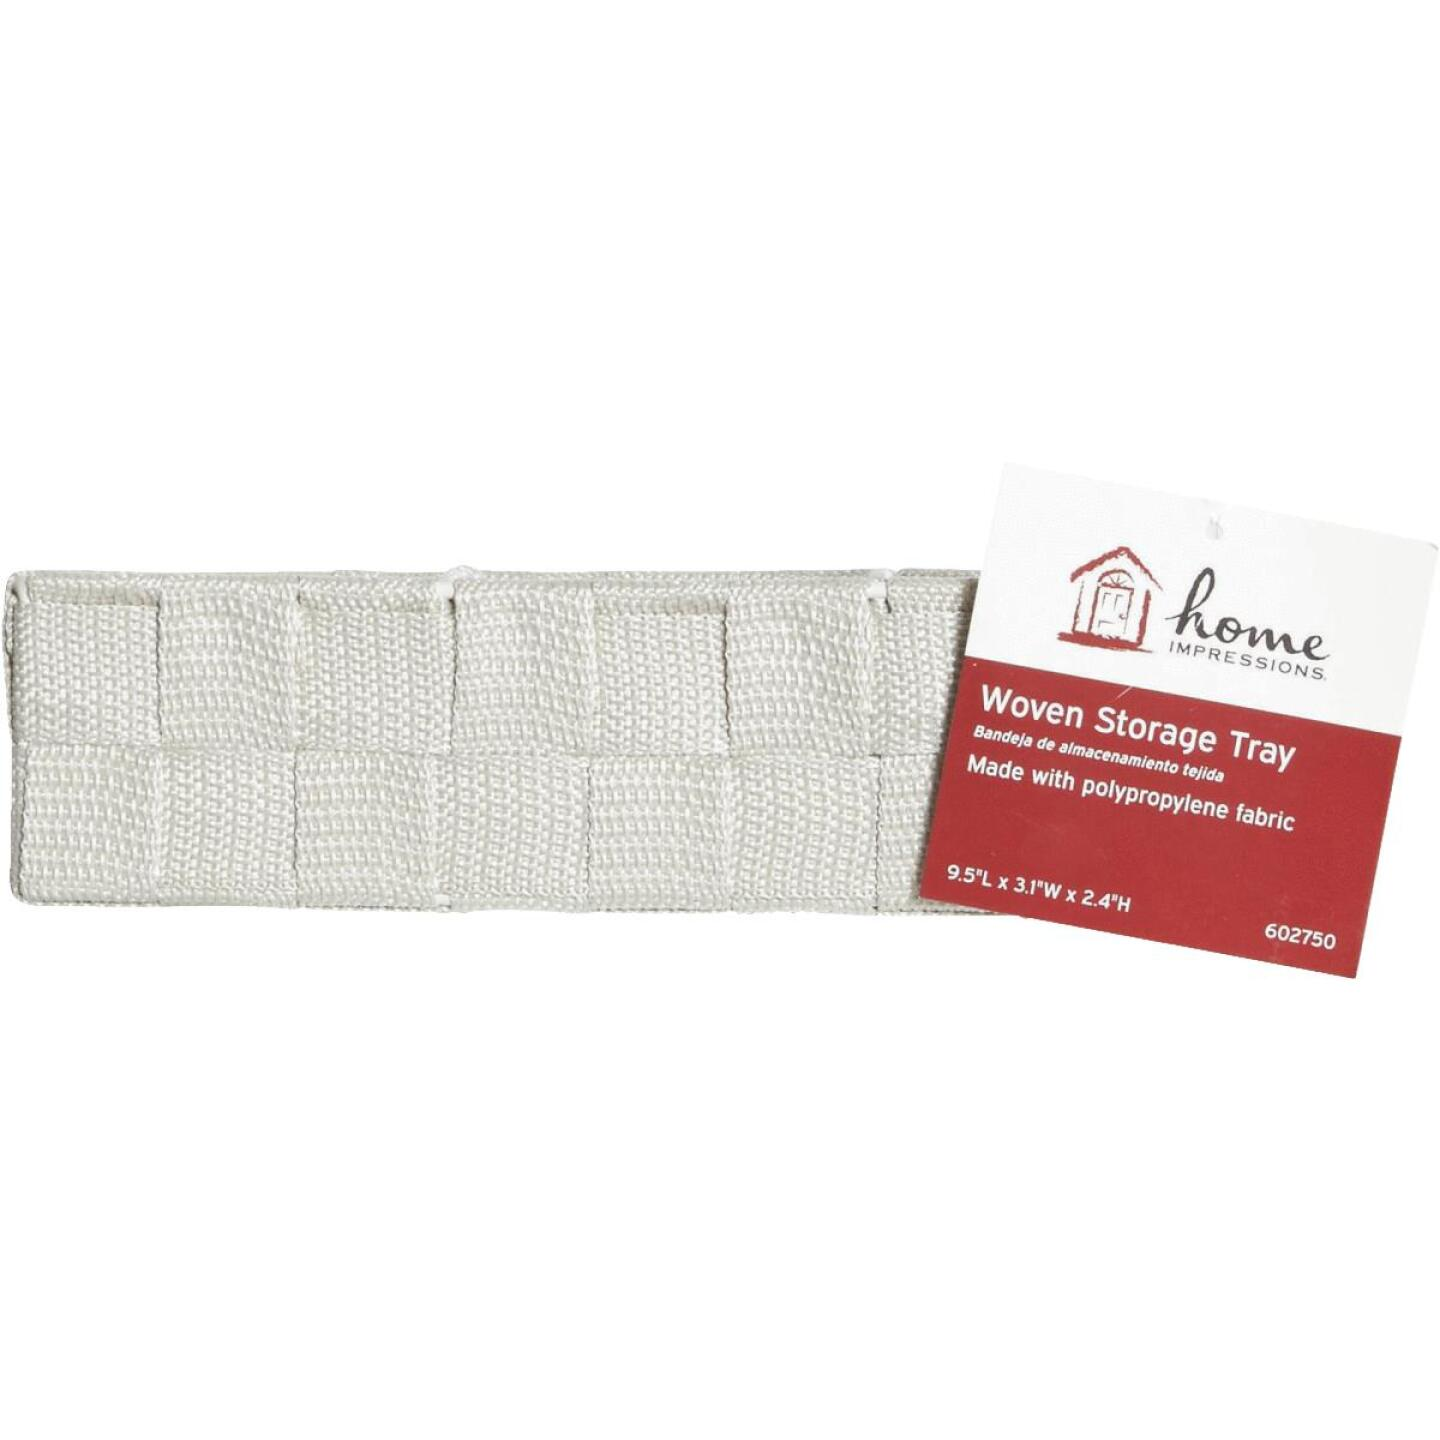 Home Impressions 3.25 In. W. x 2.25 In. H. x 9.5 In. L. Woven Storage Tray, Beige Image 2